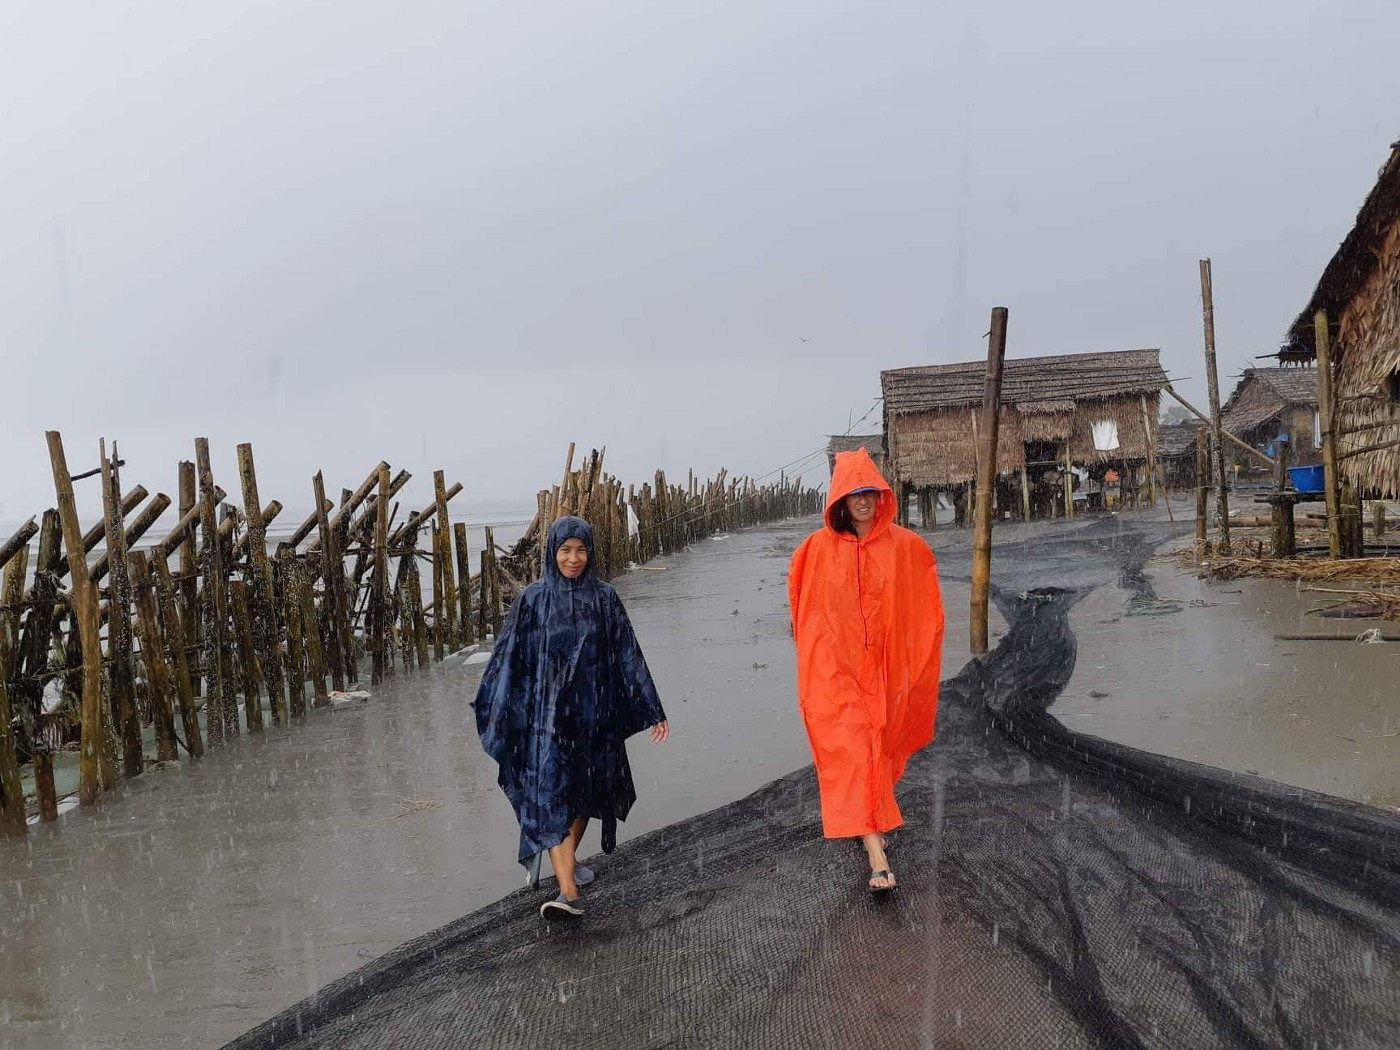 Two intrepid researchers walking through a small fishing village, with thatch huts and wooden fencing, in a torrential downpour.